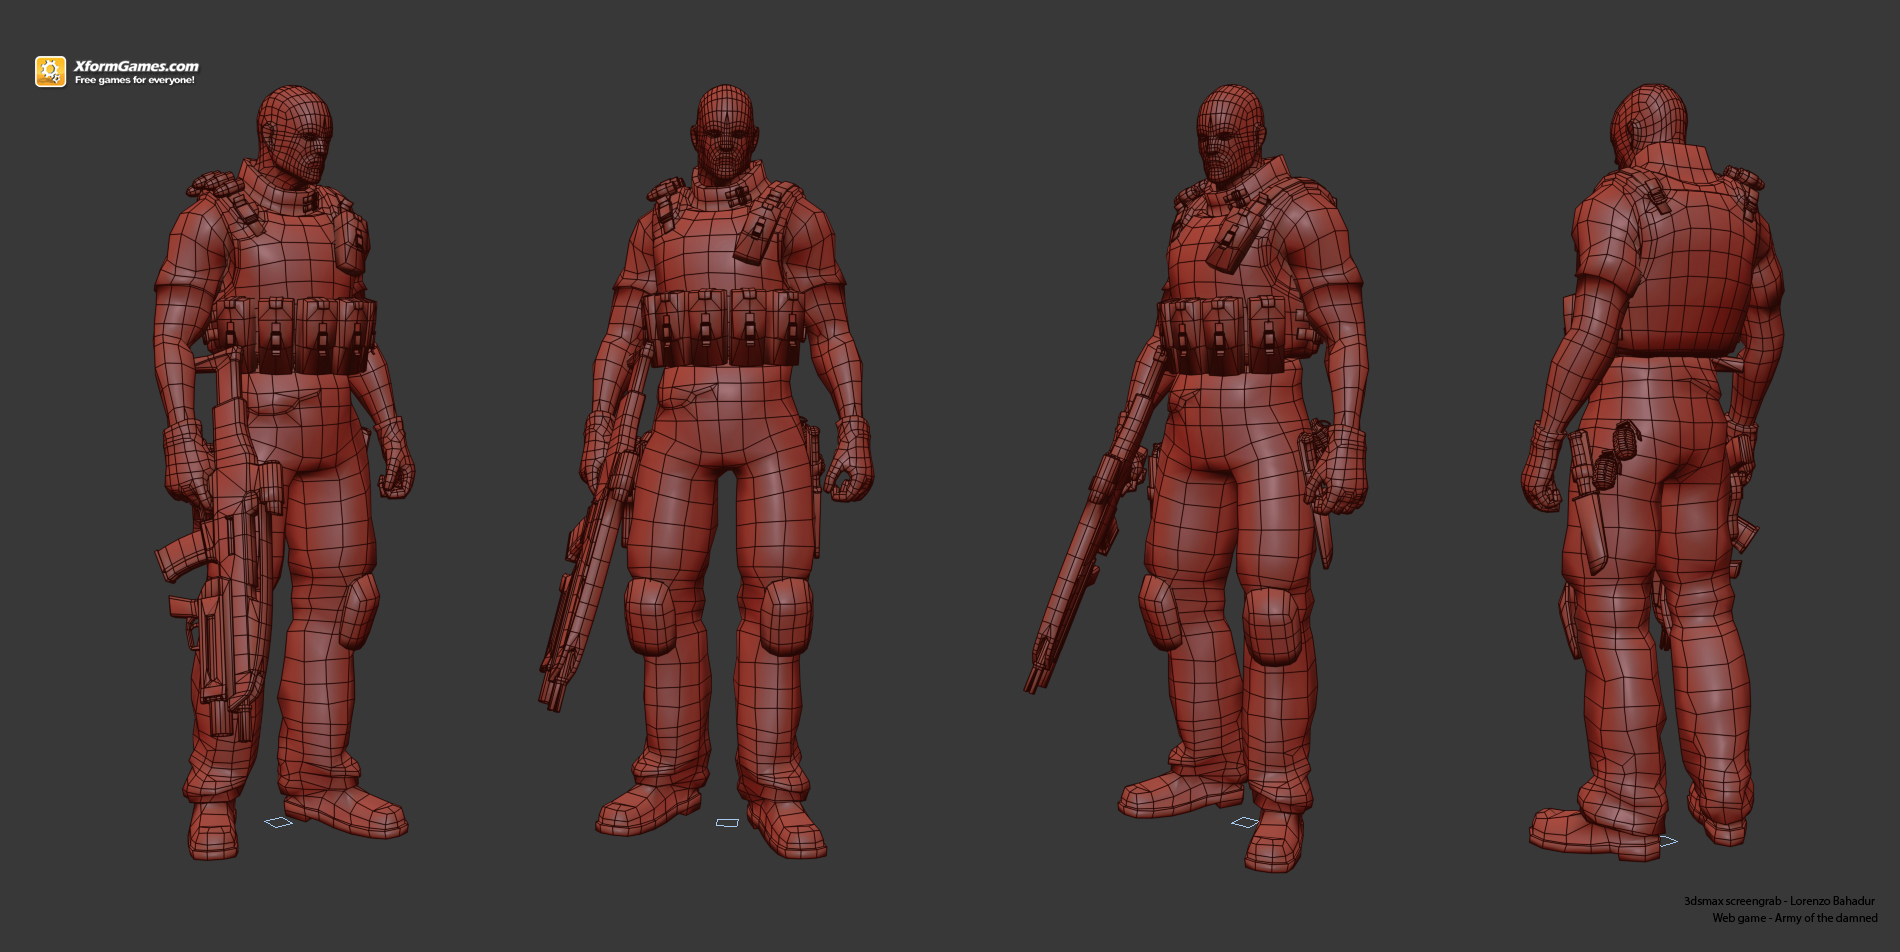 Main character wireframe pose - Army of the damned